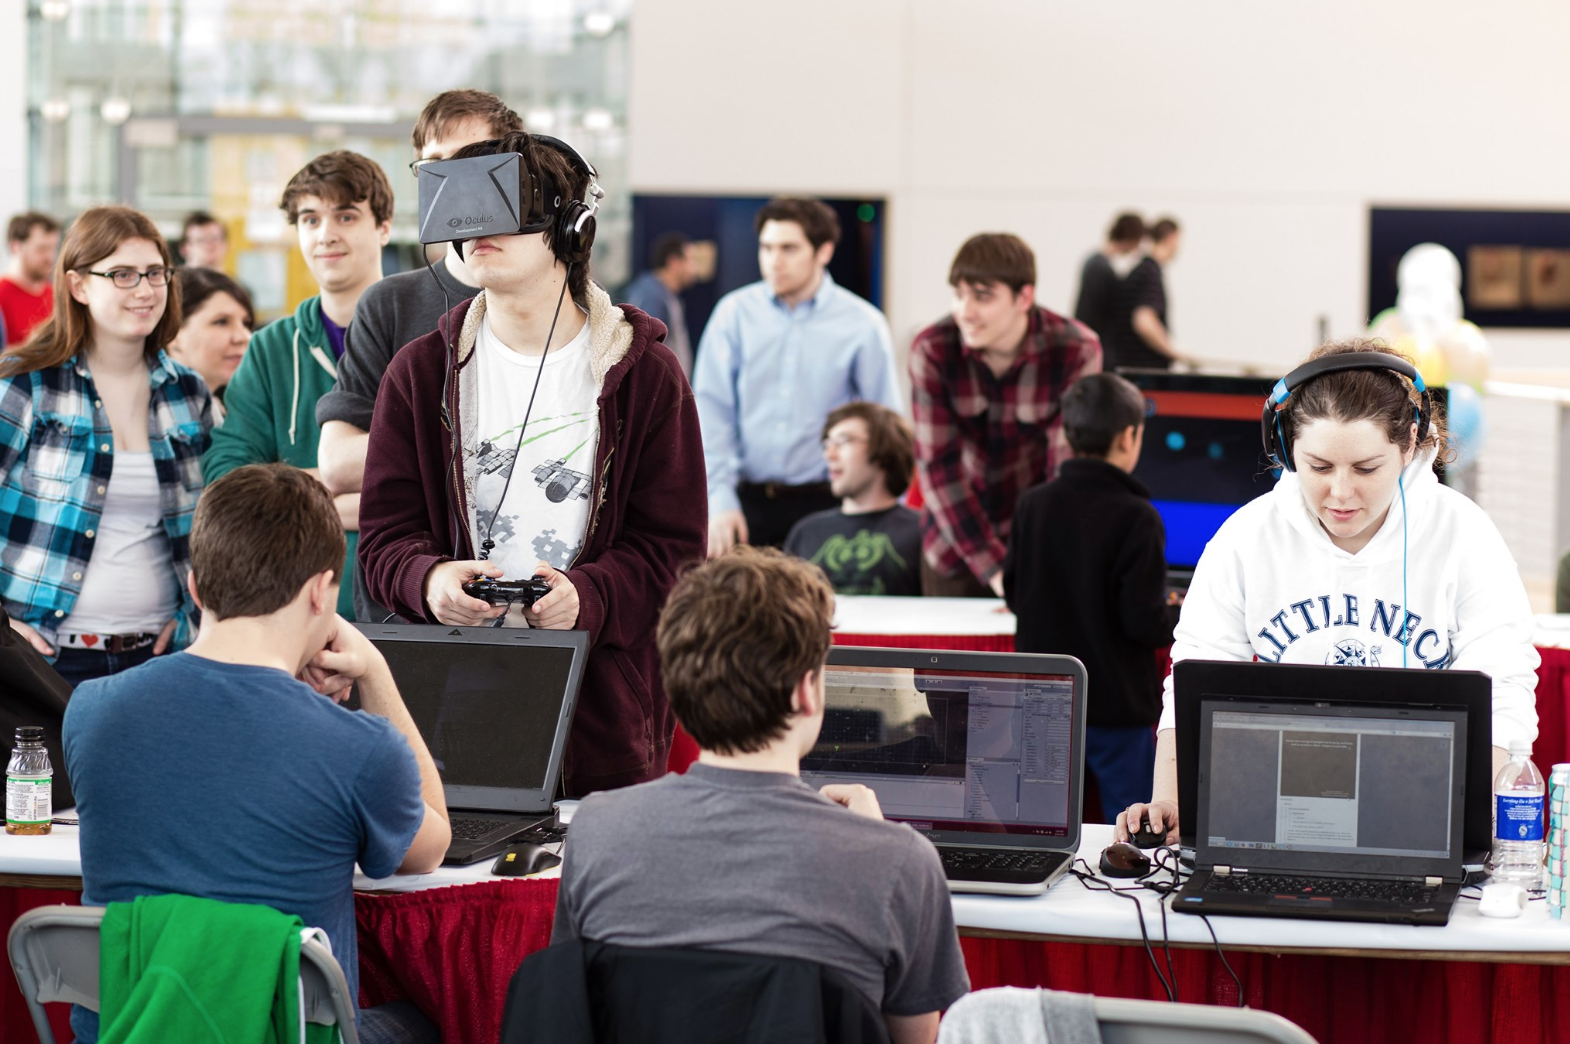 student using a VR system with other students on campus